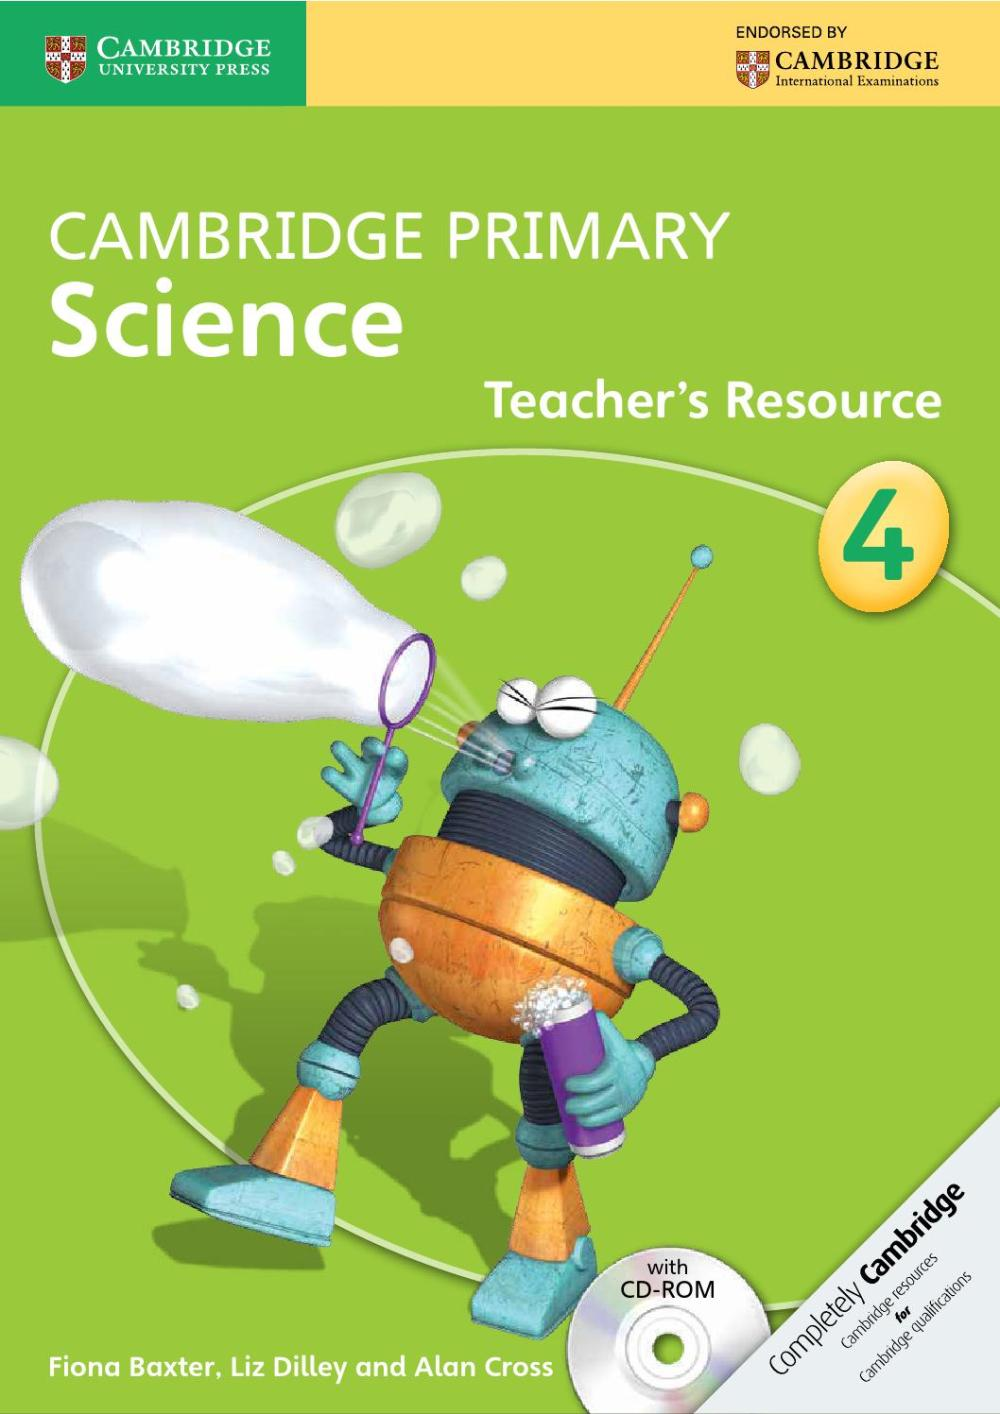 medium resolution of Cambridge Primary Science Teacher's Resource 4 by Cambridge University  Press Education - issuu